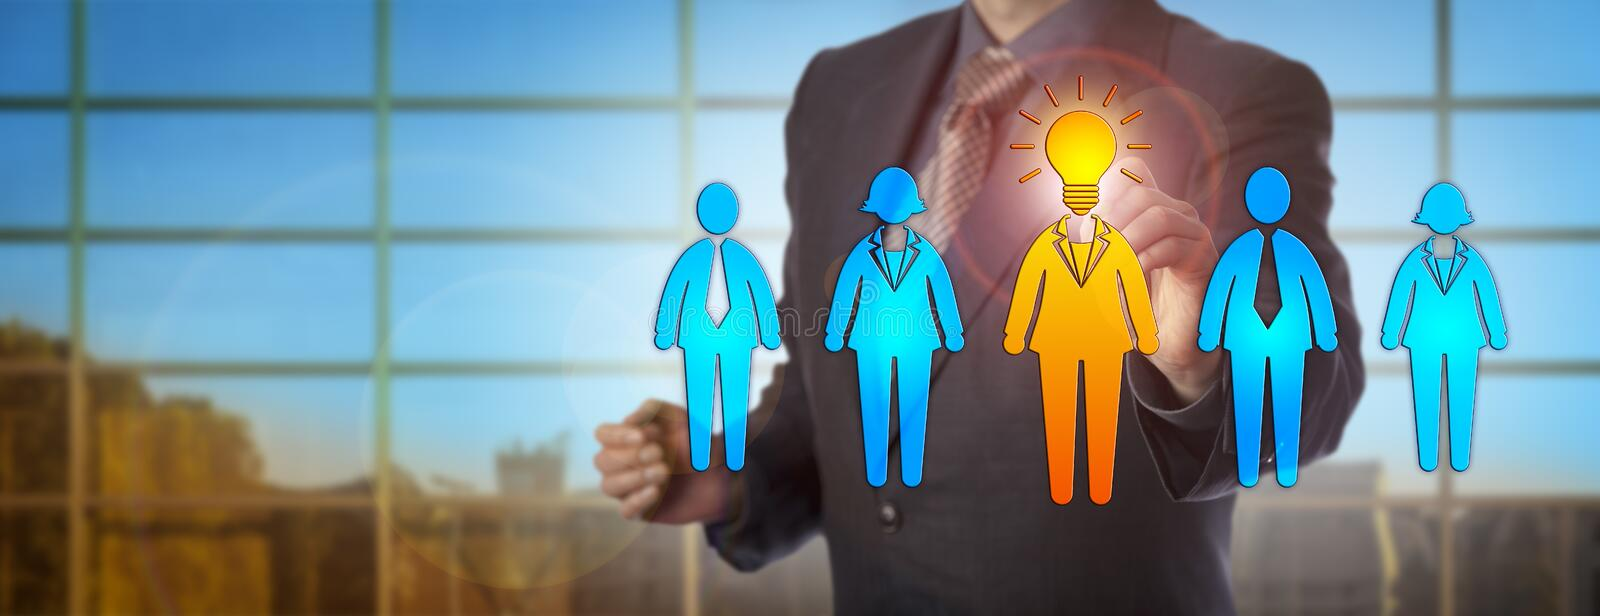 Business Person Selecting The Talent With Idea. Unrecognizable male business person selecting the brightest candidate. Human resources concept for talent royalty free stock image